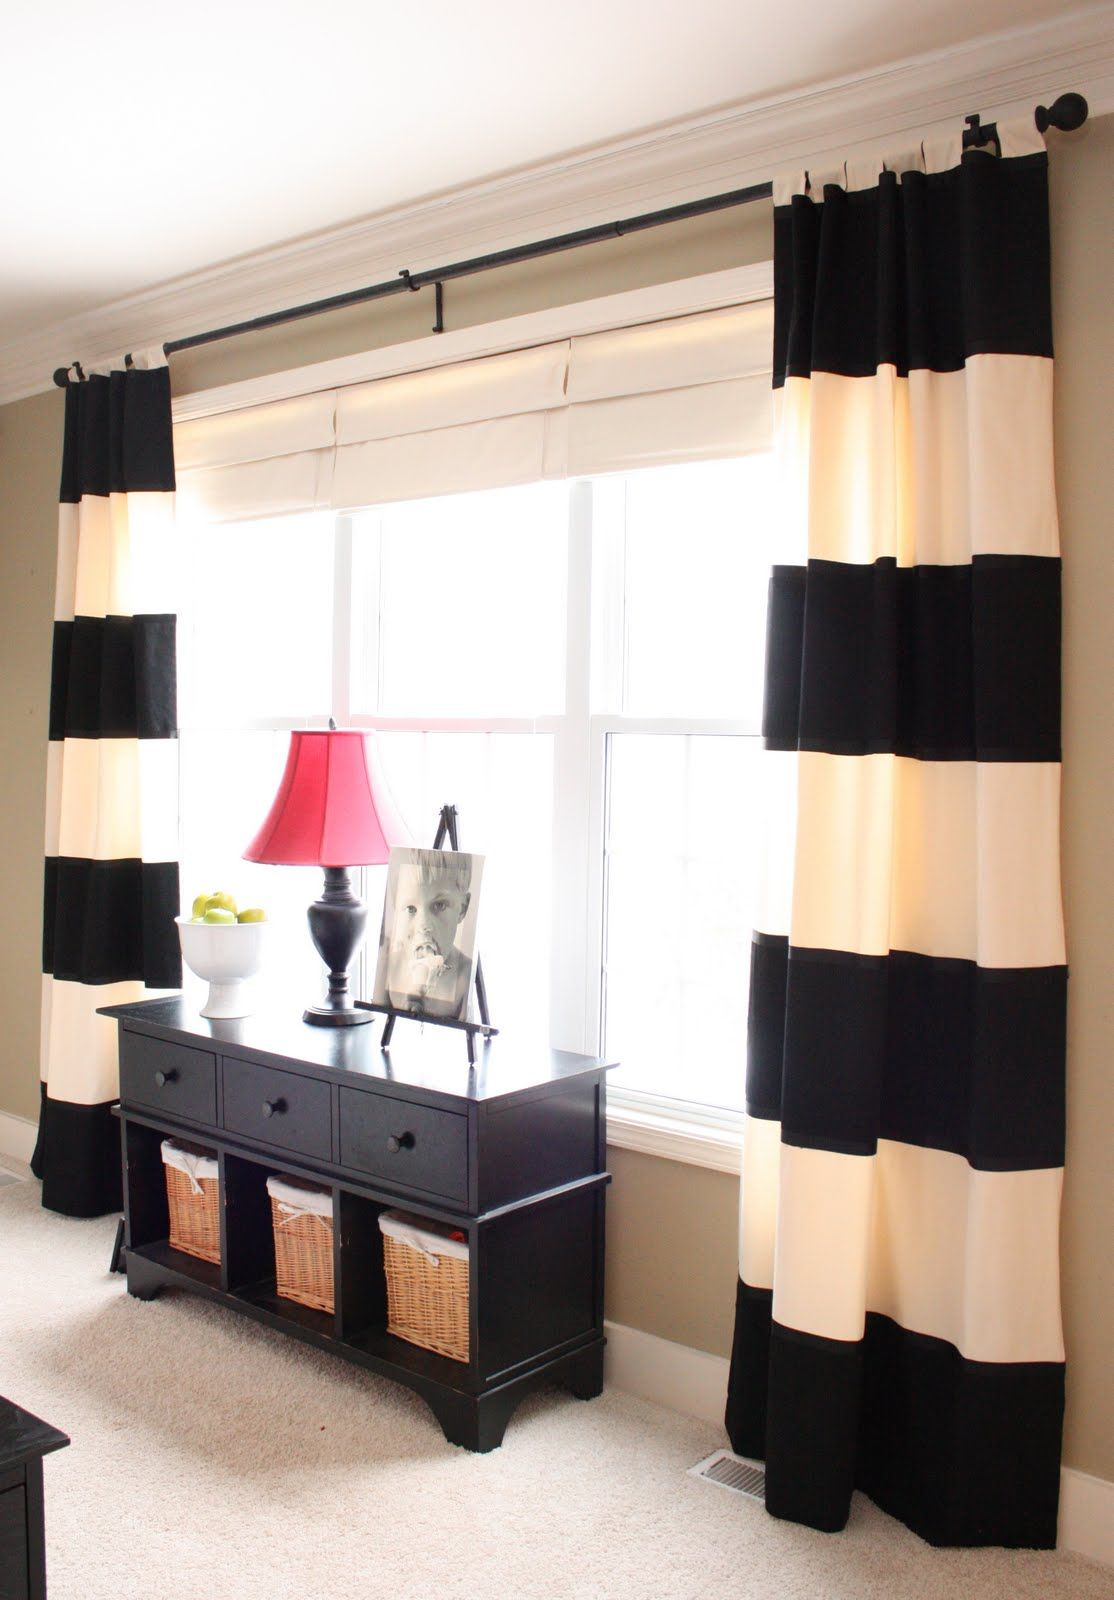 Bedroom window ideas  this page is currently under construction moderncottage family